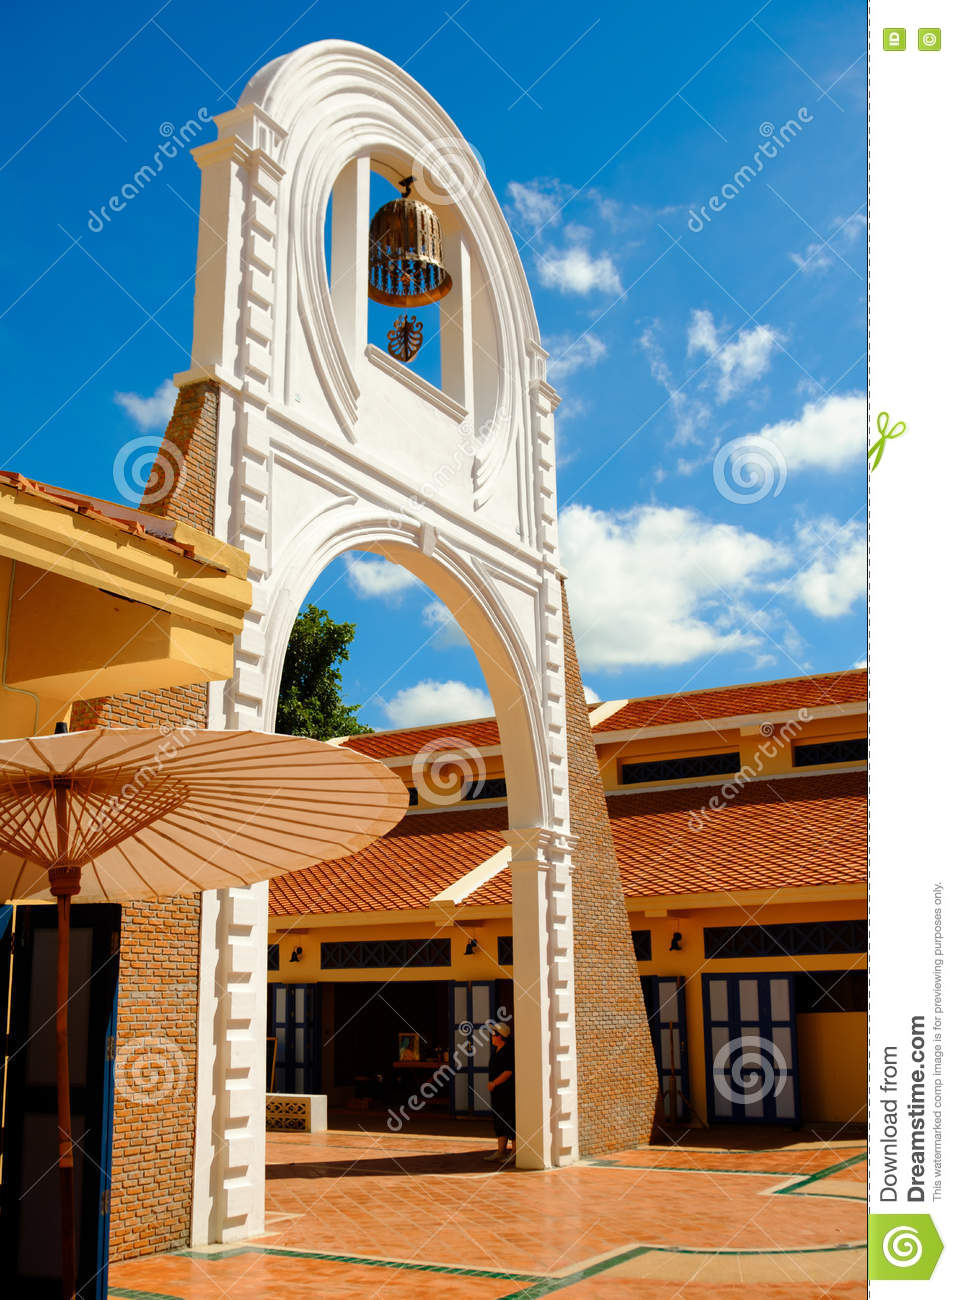 Simulation Facade Bell Tower And Yellow House With Blue Sky In Thailand Ancient